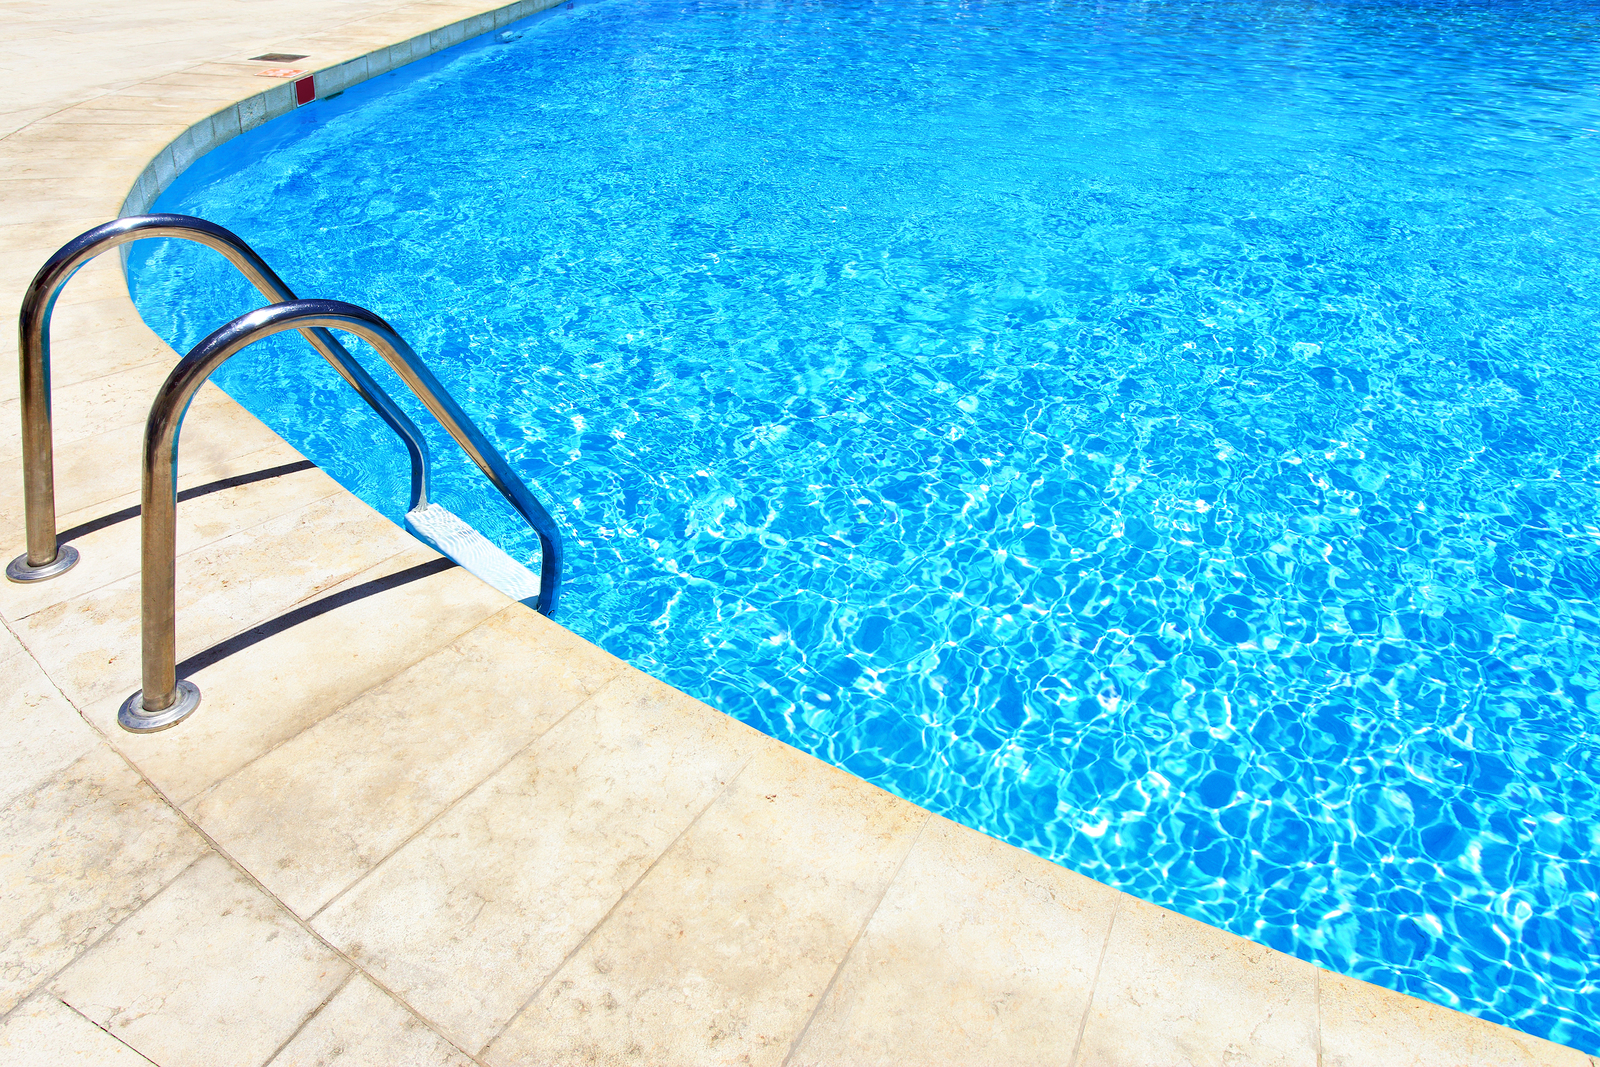 Swimming Pool - New Jersey Swimming Pool Accident Attorney